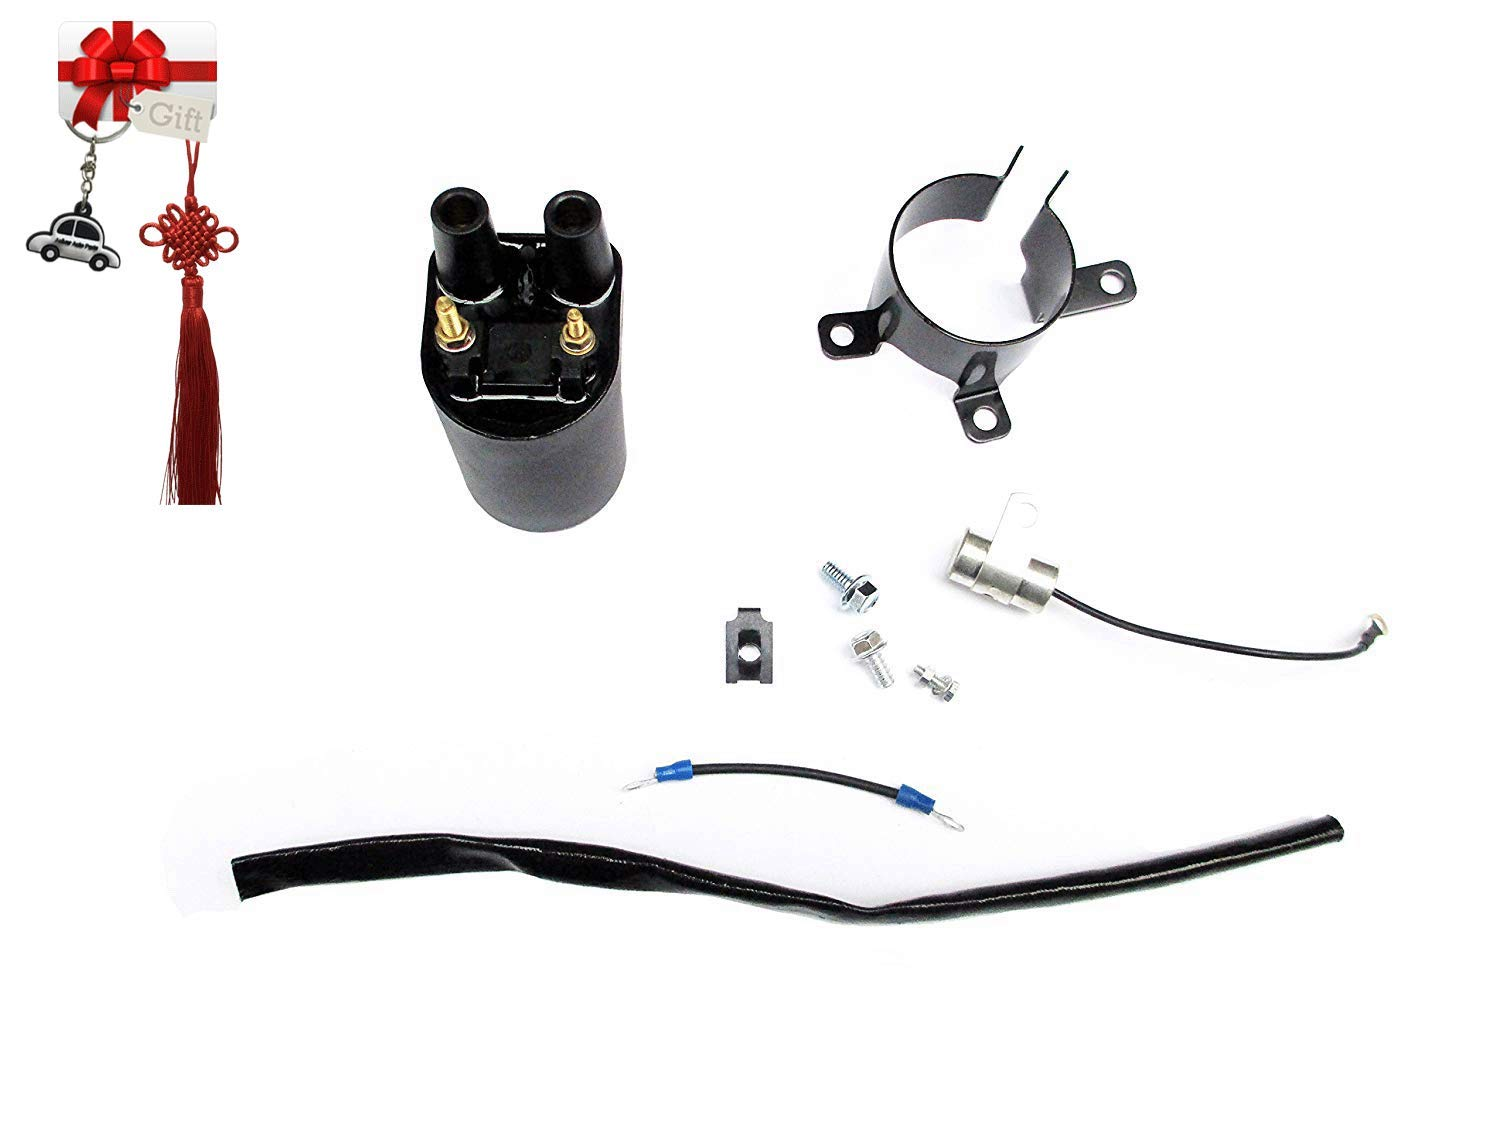 Aquiver Auto Parts Ignition Coil Kit for Onan Generator Welder Factory 541-0522 Replaces 166-076